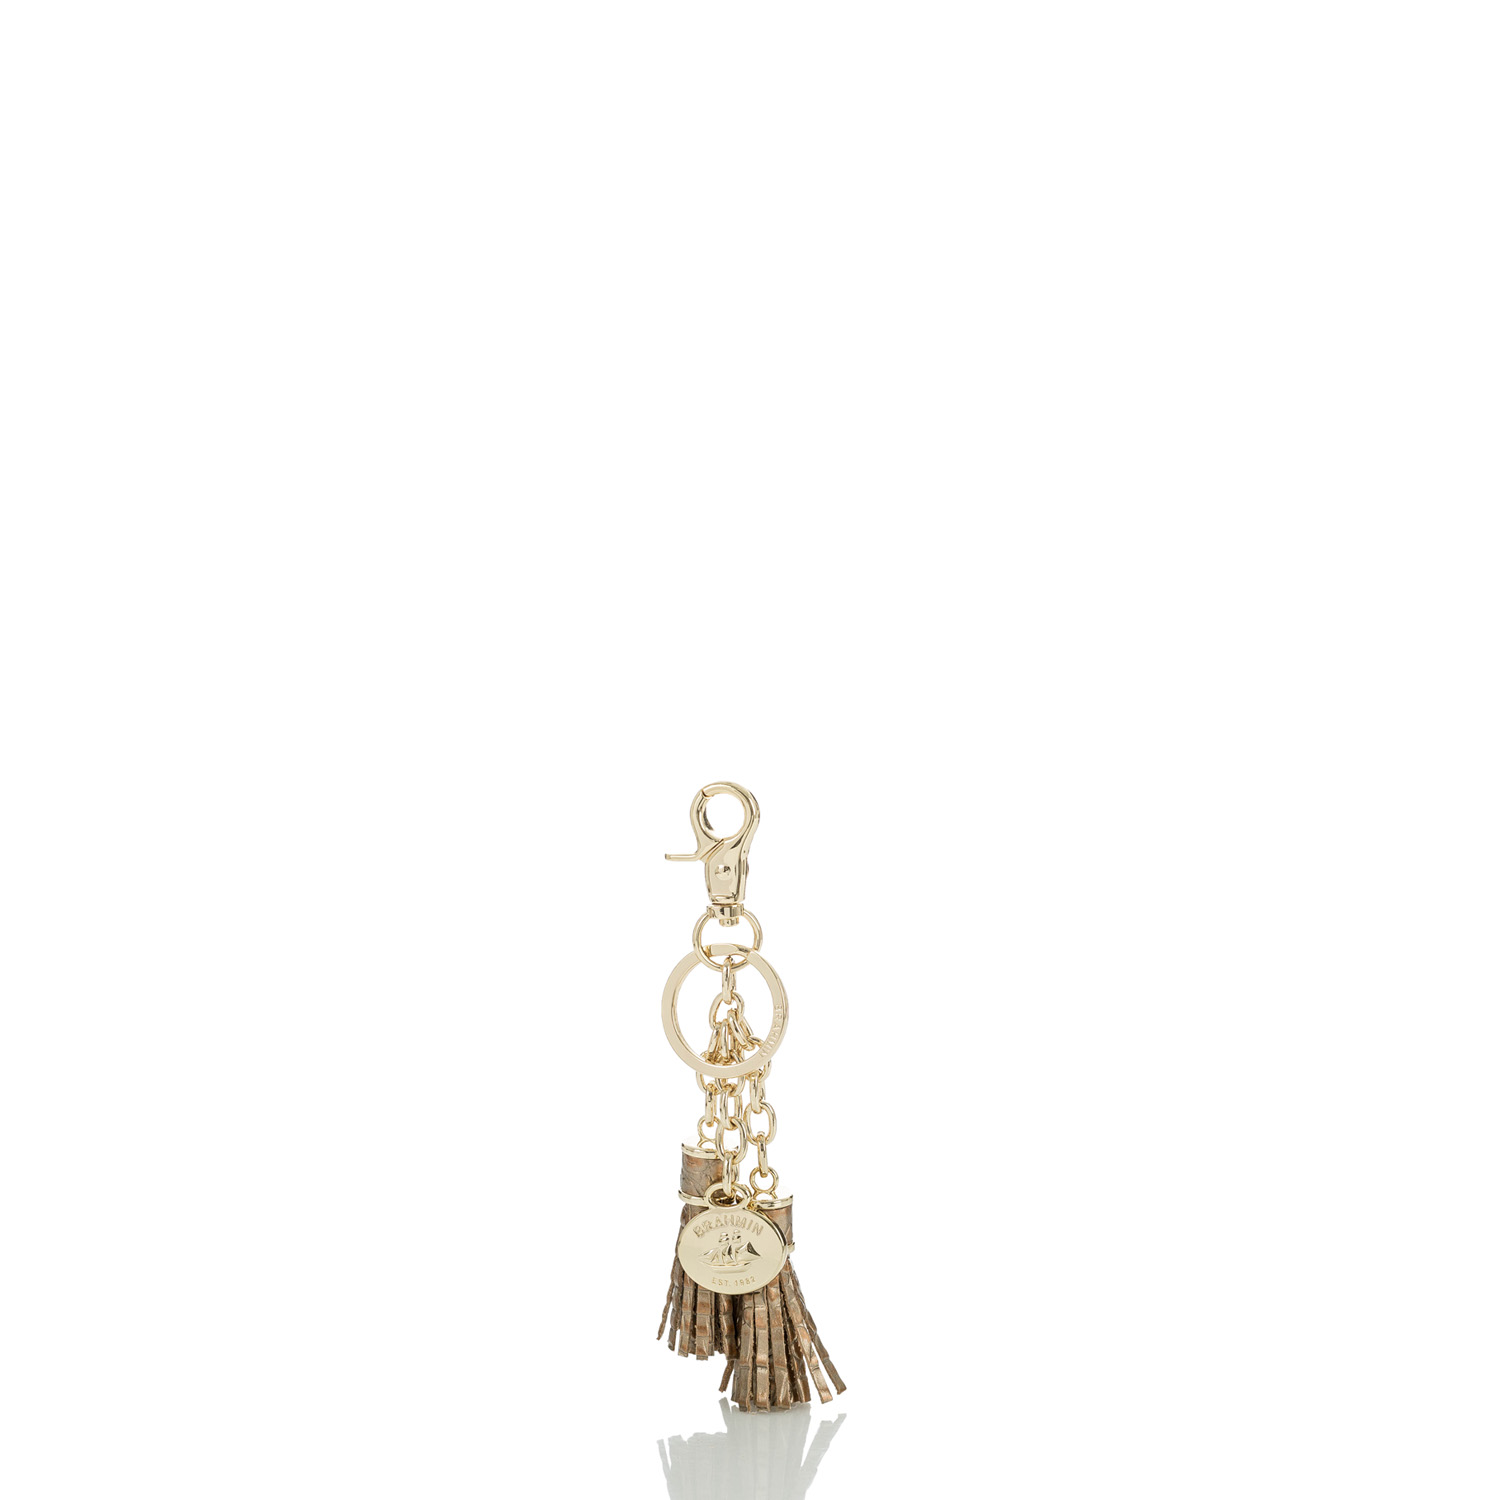 Tassel Key Ring Rose Gold Melbourne